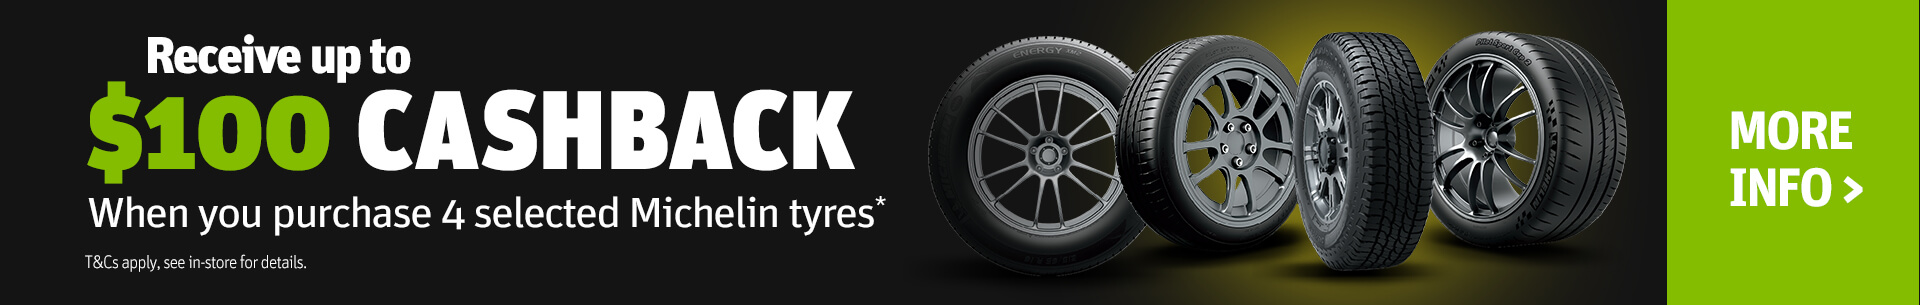 Michelin Up To $100 Cashback Promotion Banner